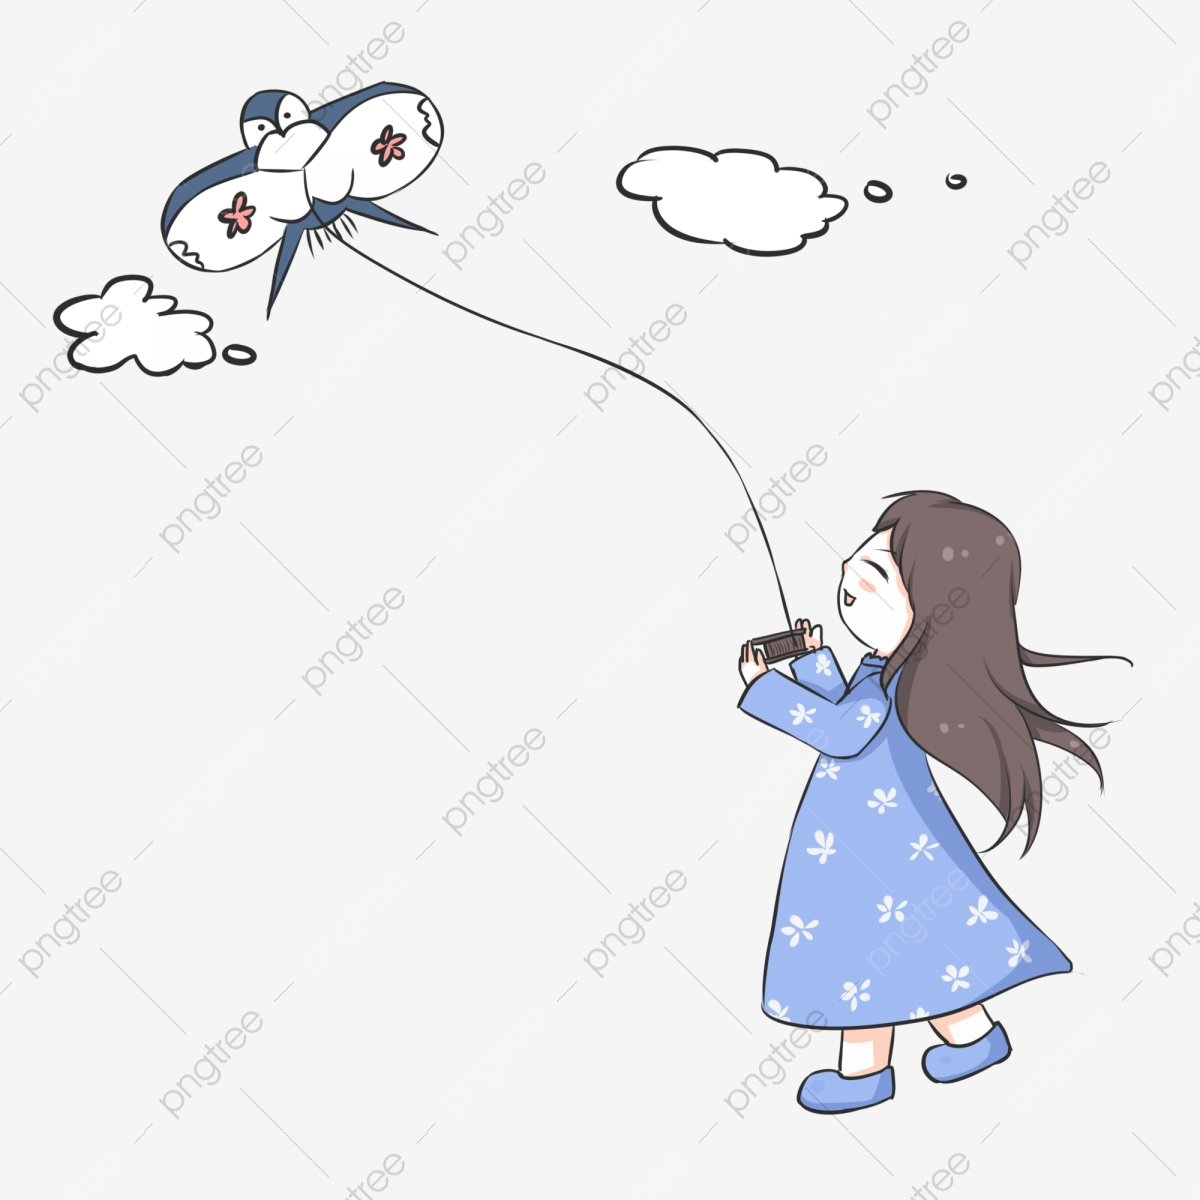 Funny Doodle Kids Stock Illustration - Download Image Now - iStock